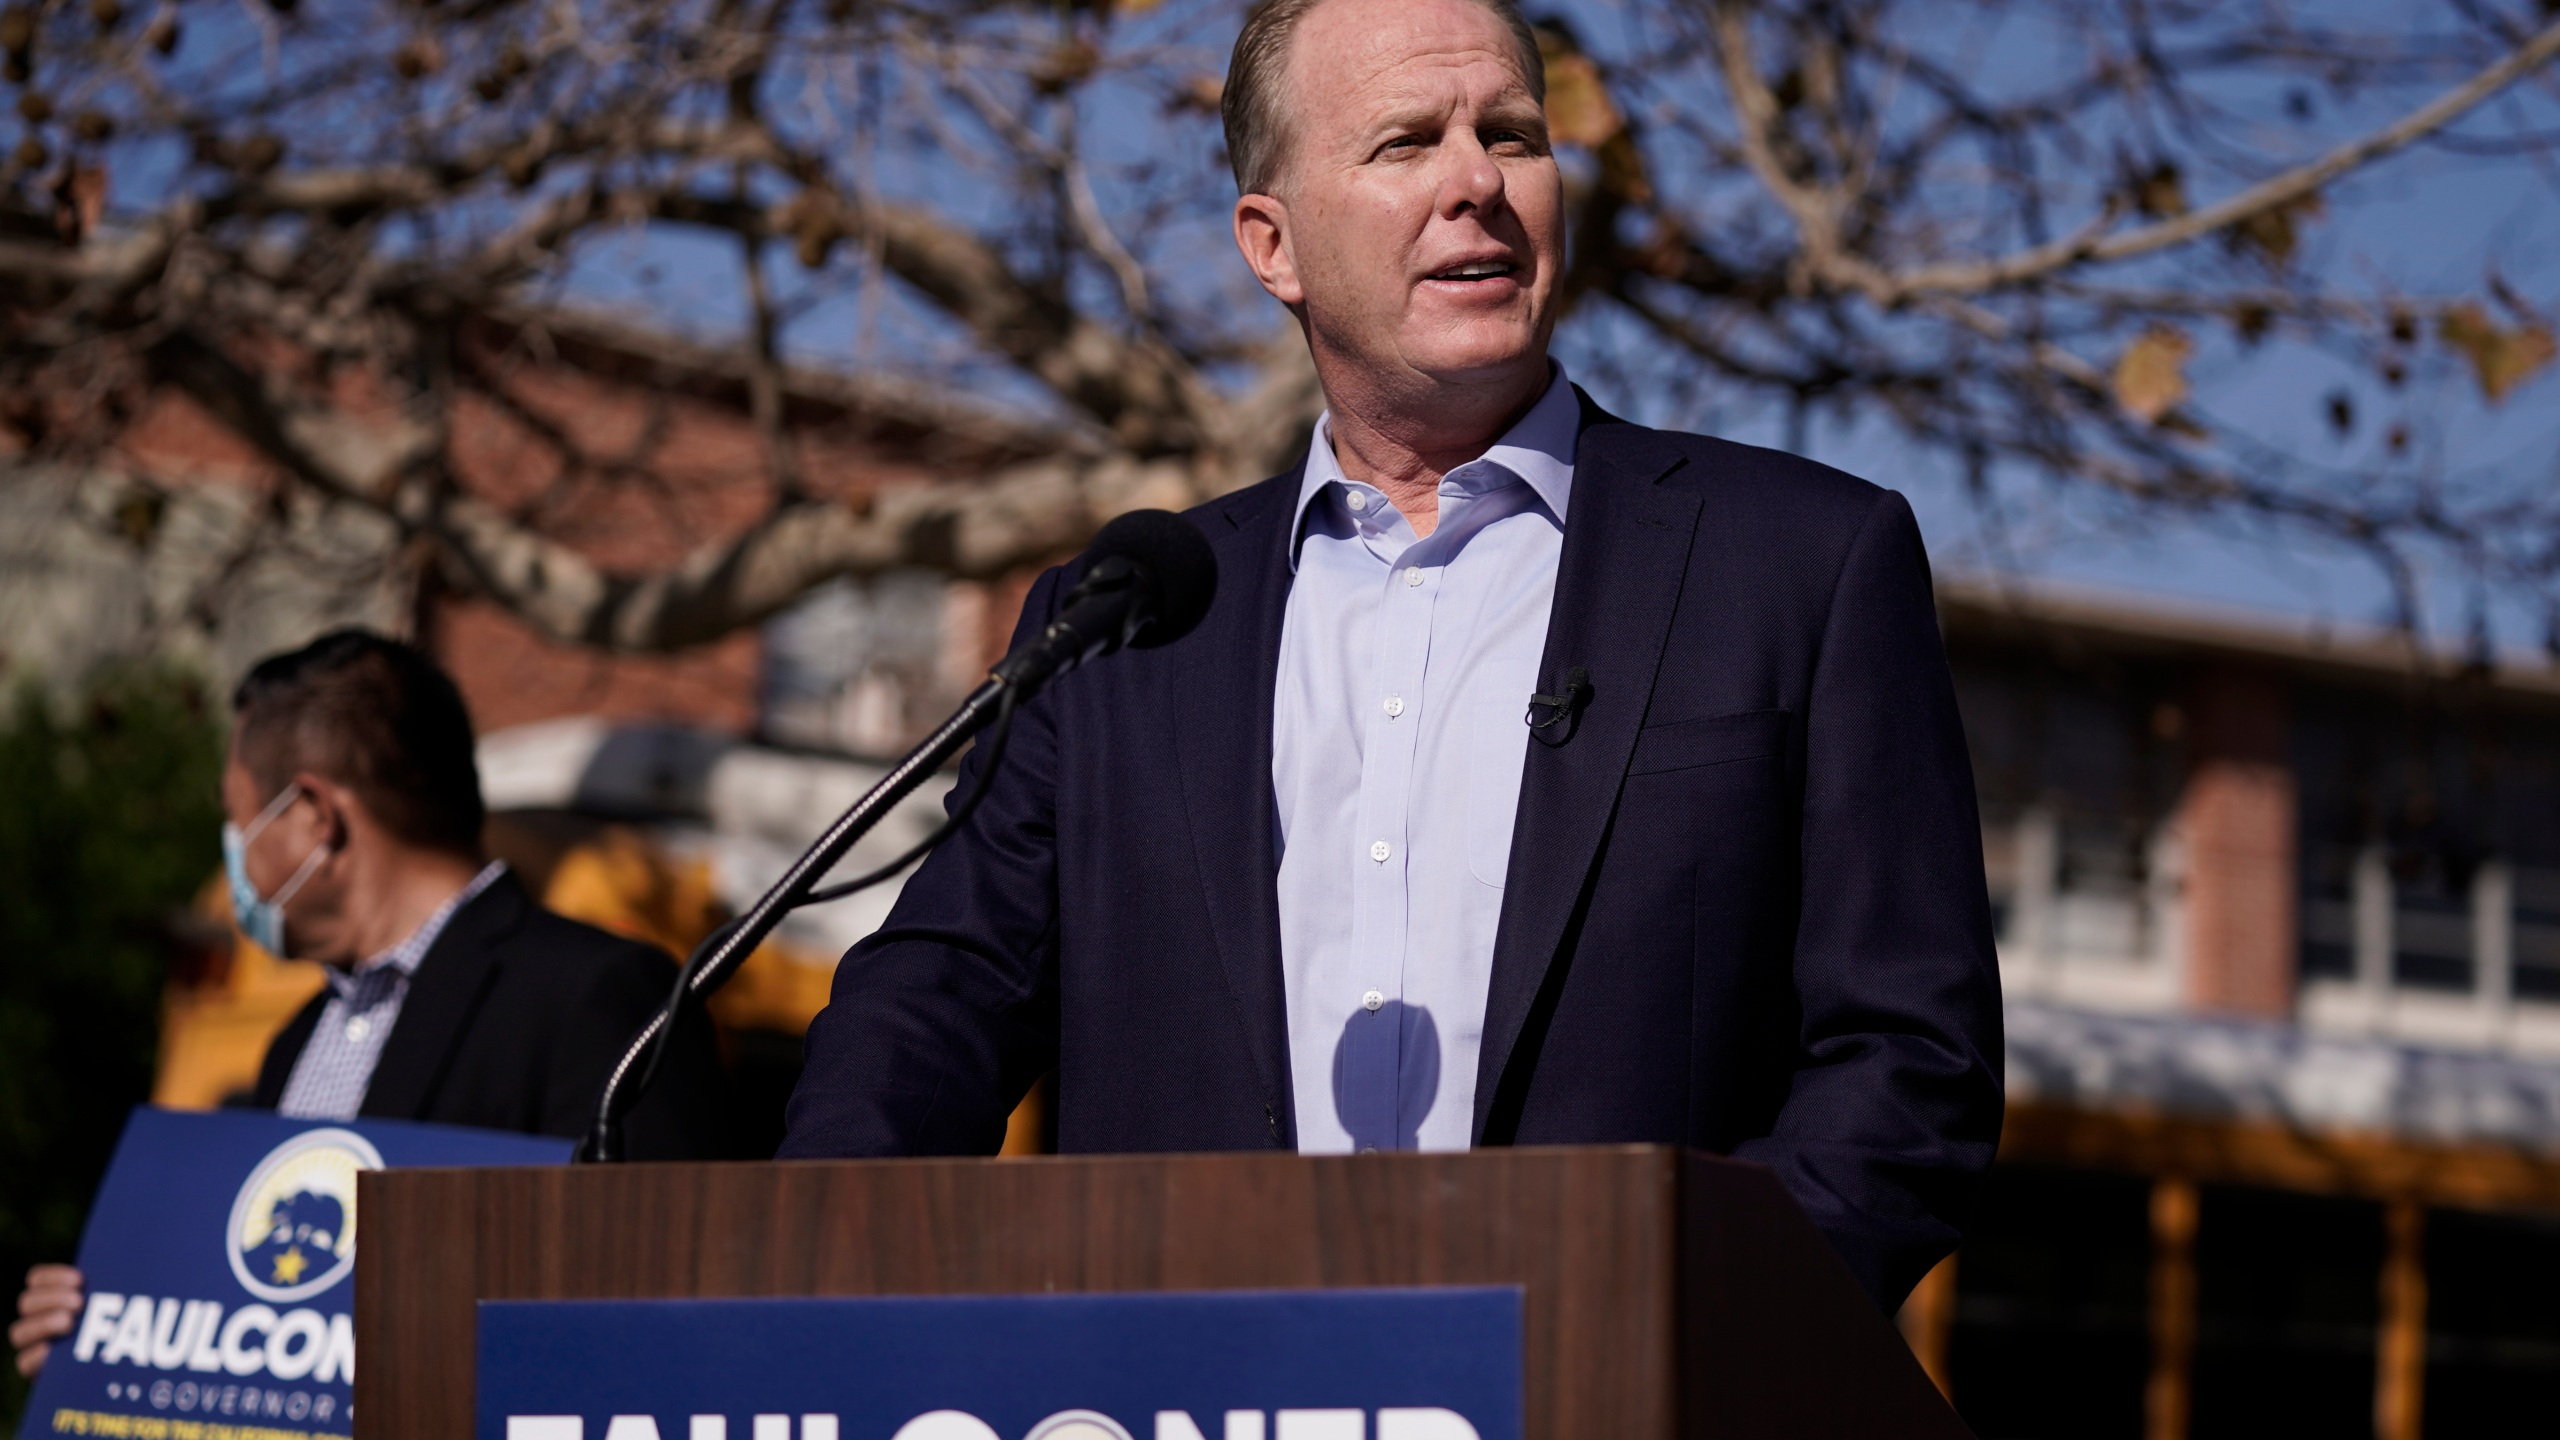 Kevin Faulconer